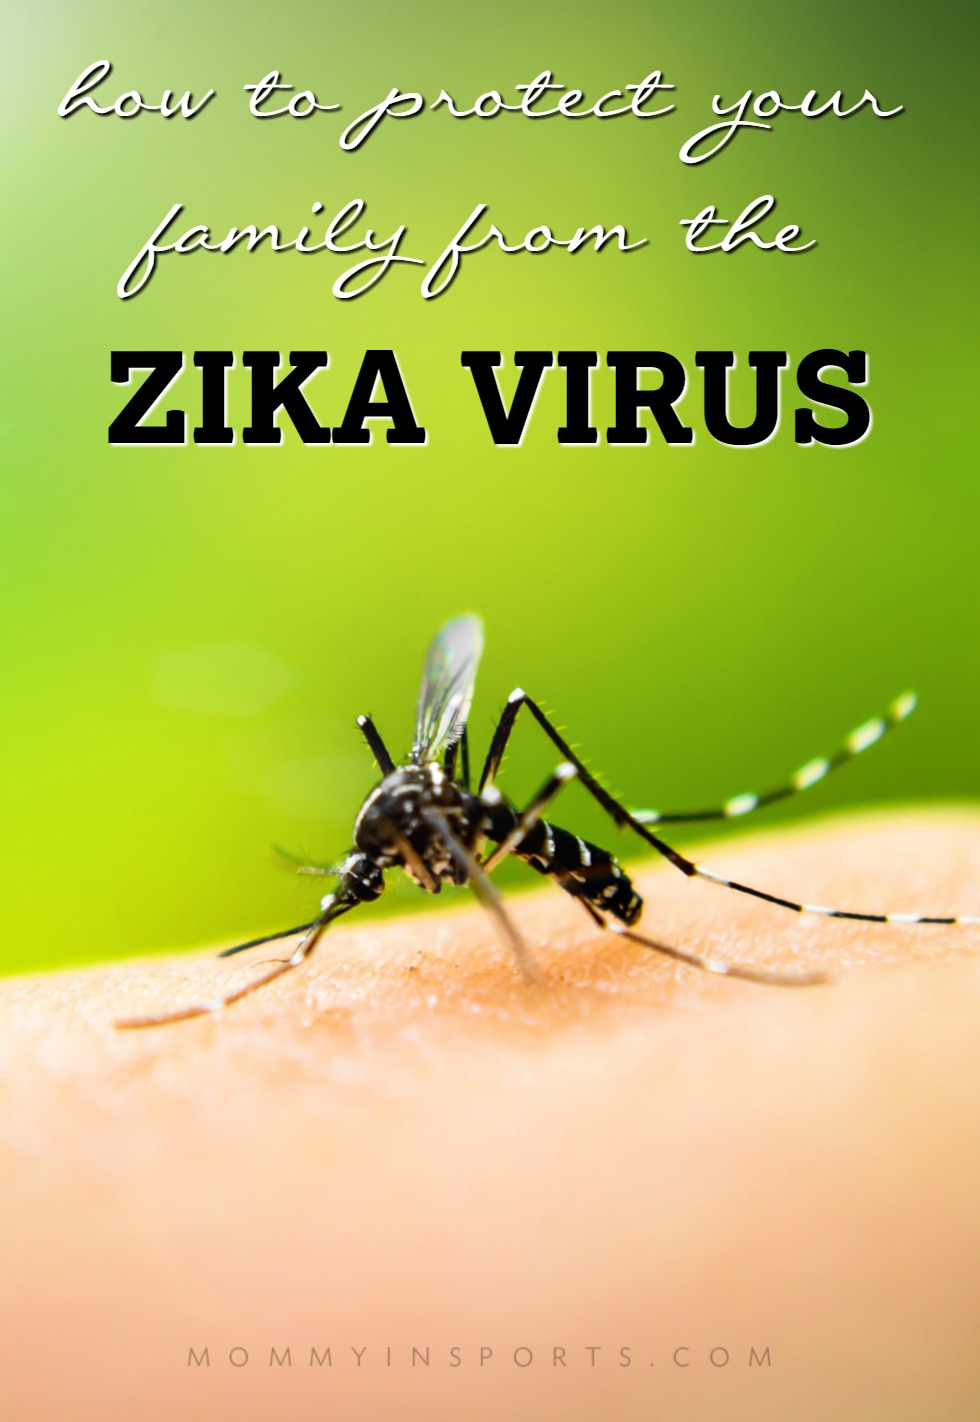 Worried about the Zika virus? Now that it's in the United States, you can take some precautions to protect your family from the Zika Virus!